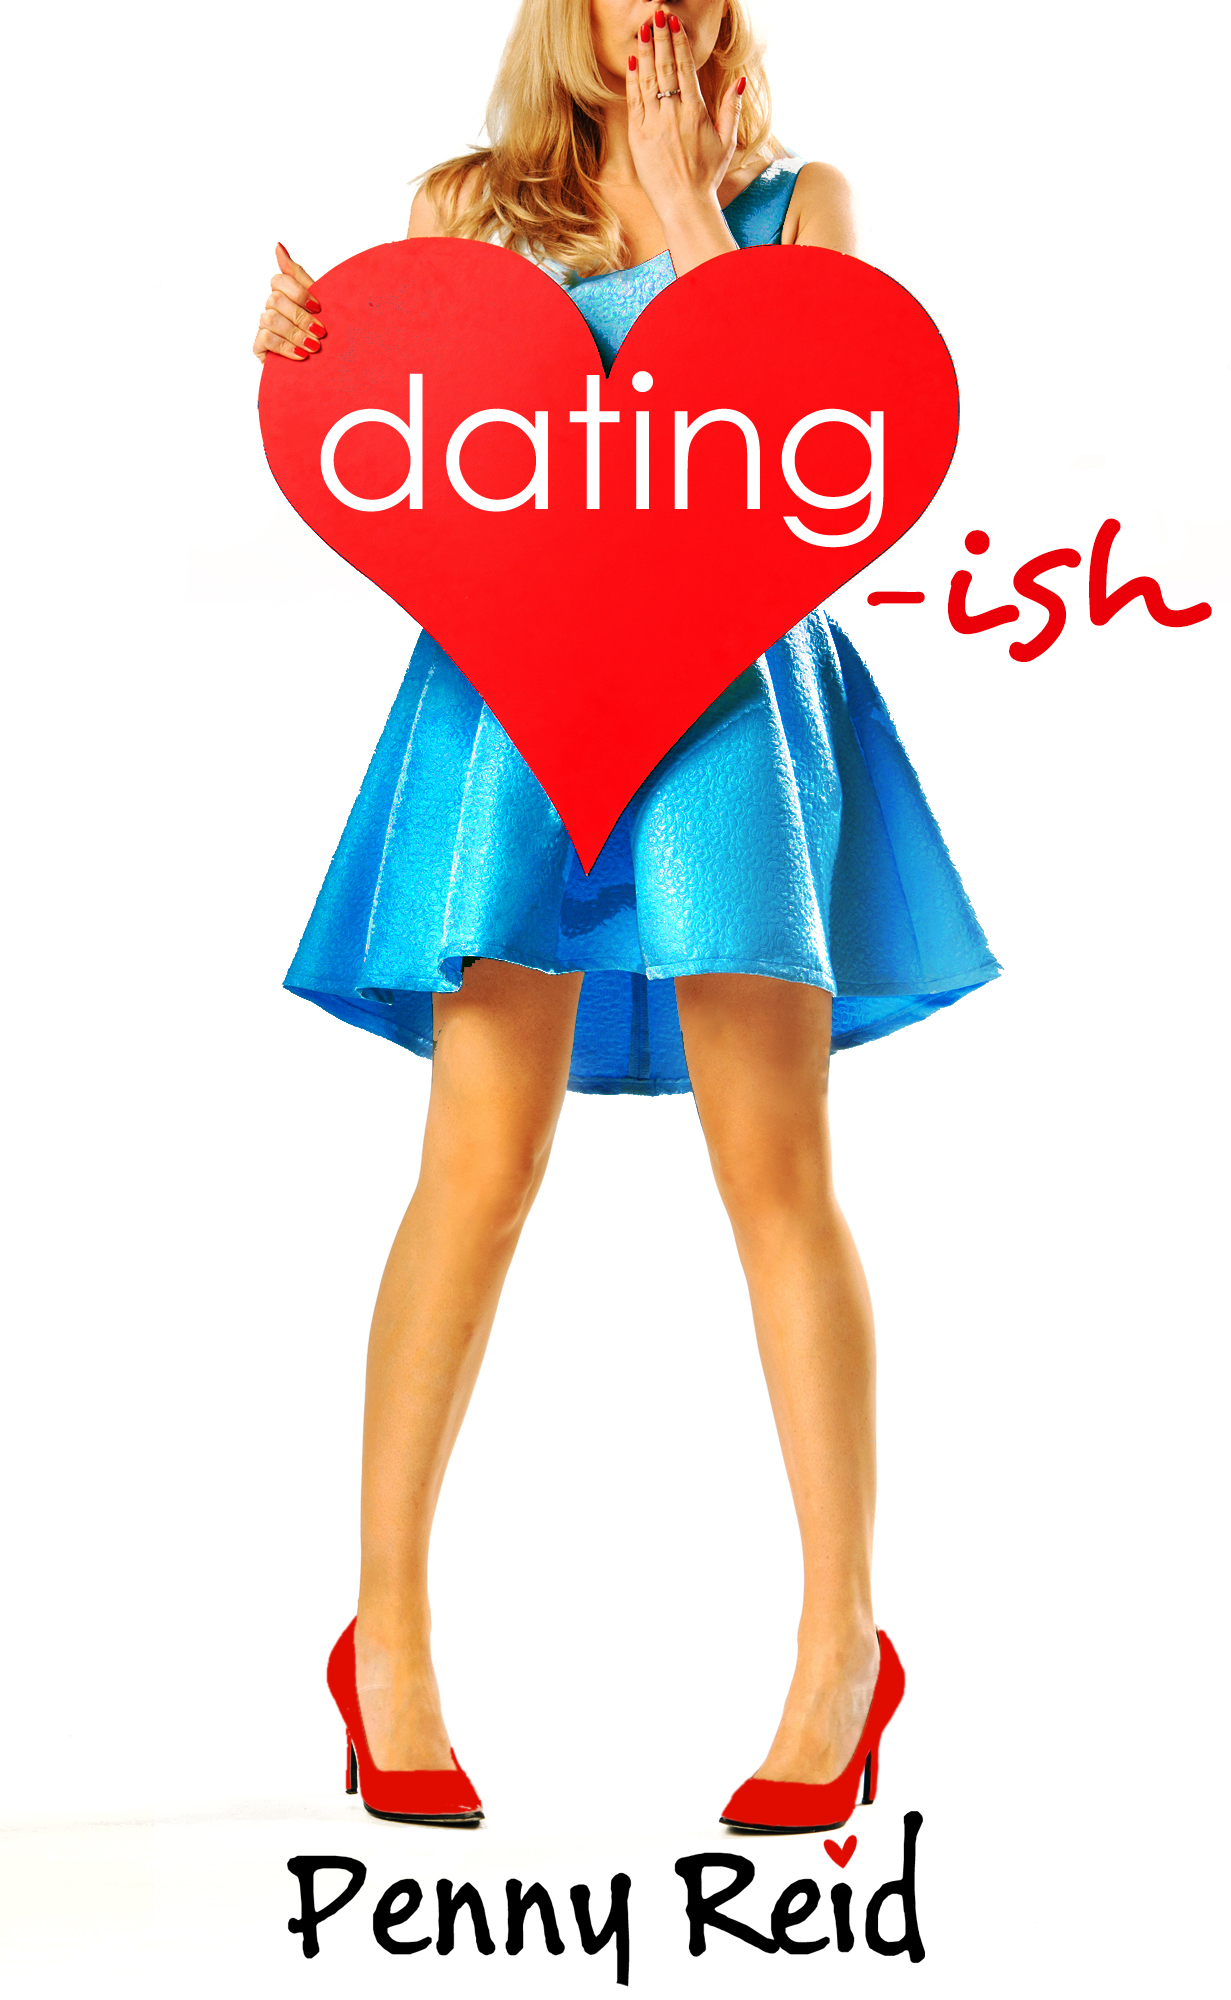 Dating-ish (Knitting in the City, #6) by Penny Reid